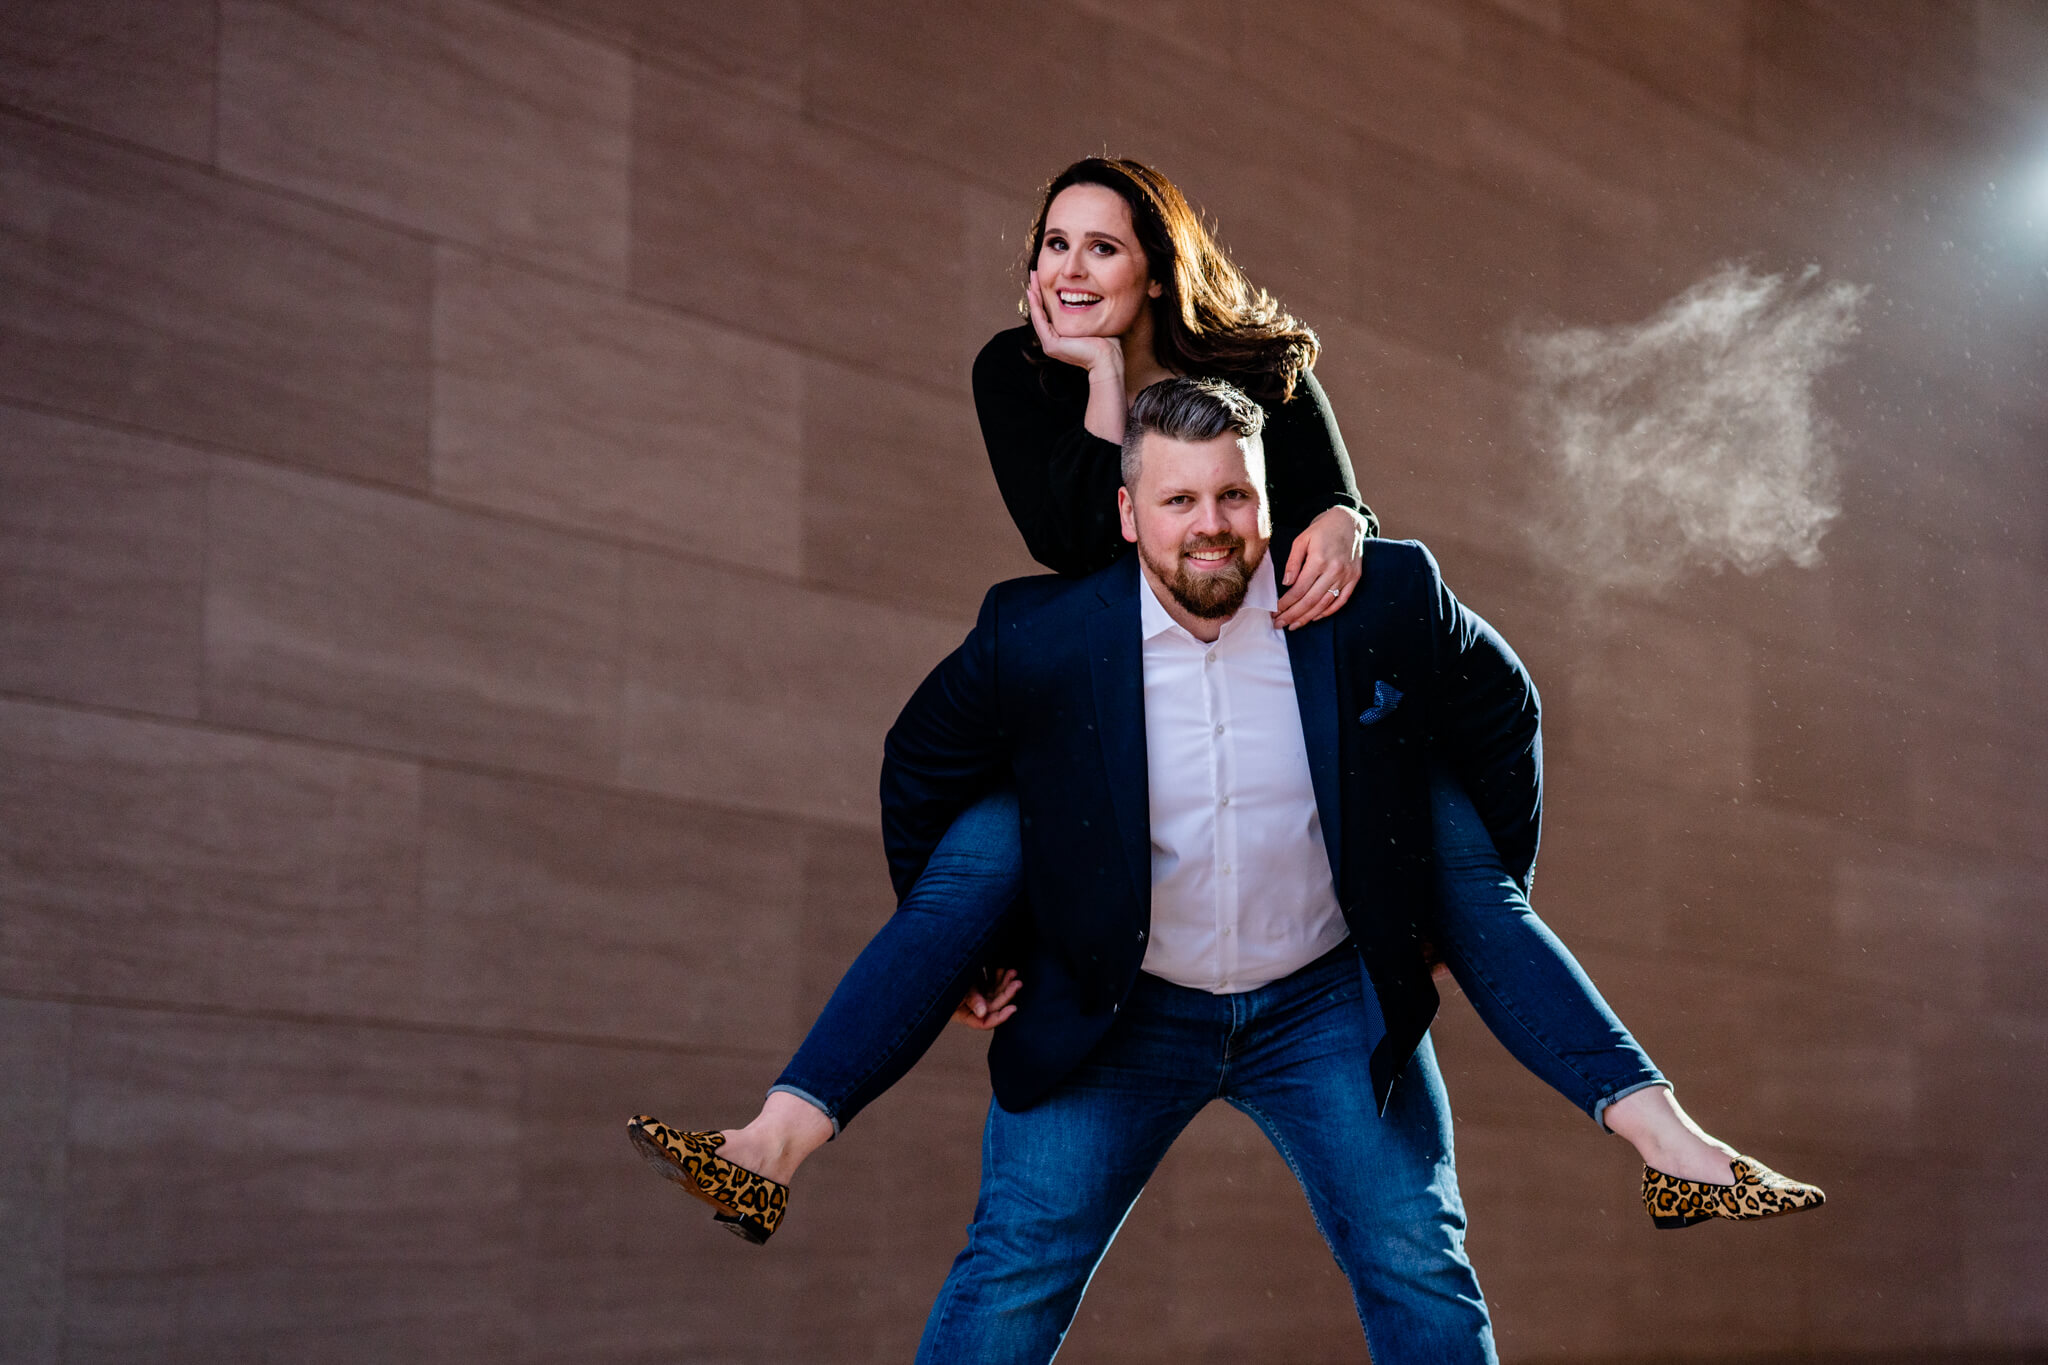 National Gallery East Engagement Session DC Engaged Art Museum Engagement Winter Engagement Session-12.jpg